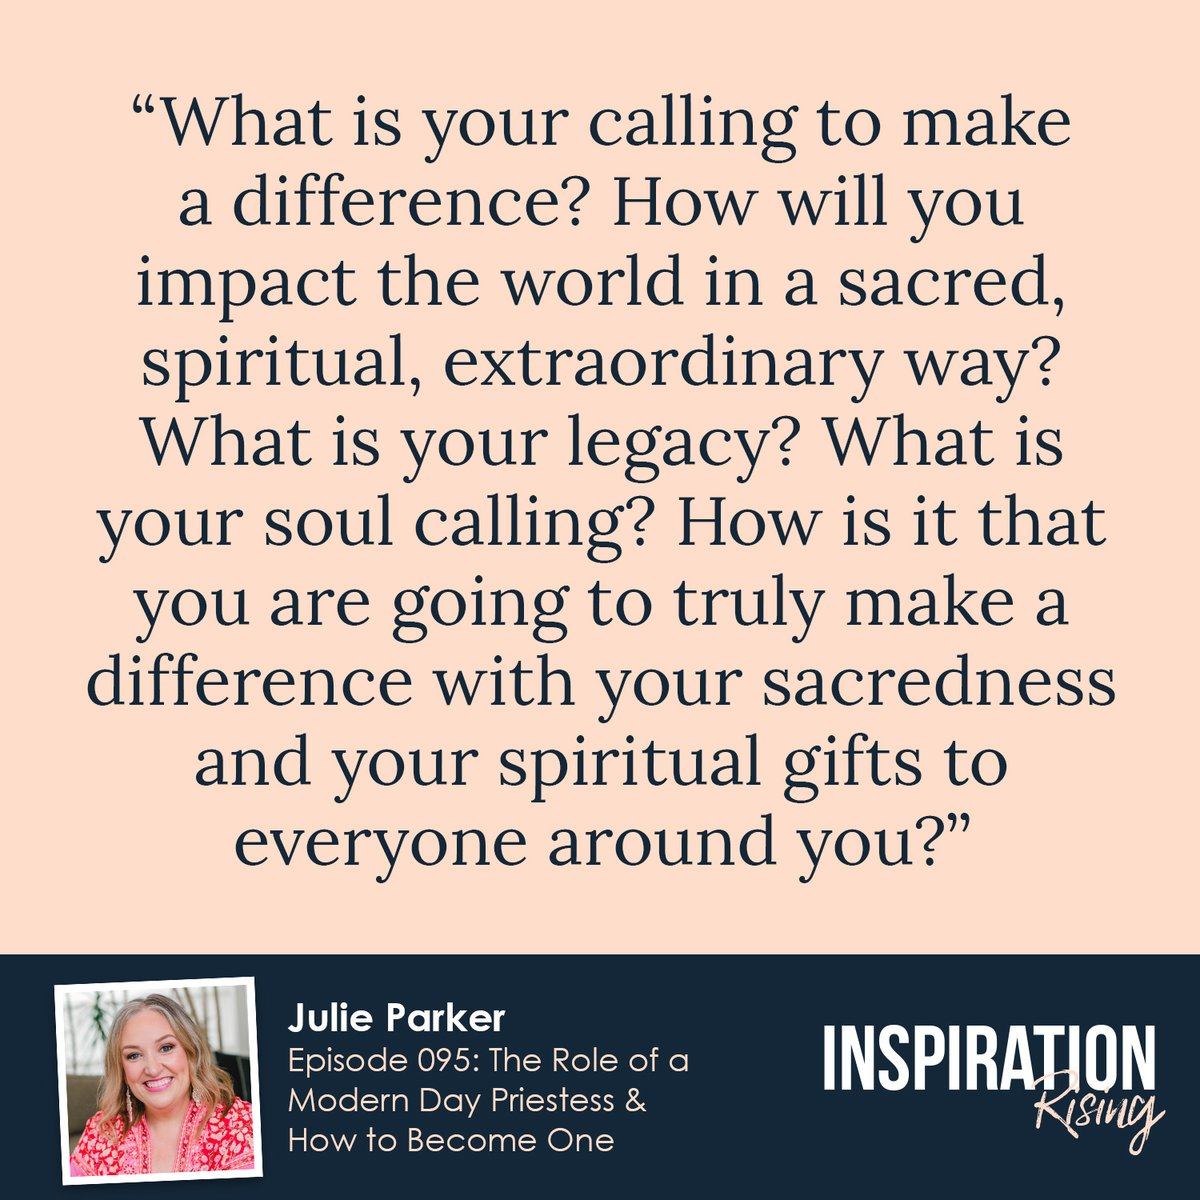 """What is your calling to make a difference? How will you impact the world in a sacred, spiritual, extraordinary way? What is your legacy? What is your soul calling?"" @_JulieParker LISTEN HERE: http://www.InspoRising.com/JulieParker  #priestess #priestesspath #spirituality #calling #spiritualpic.twitter.com/BT2C1WsFcA"